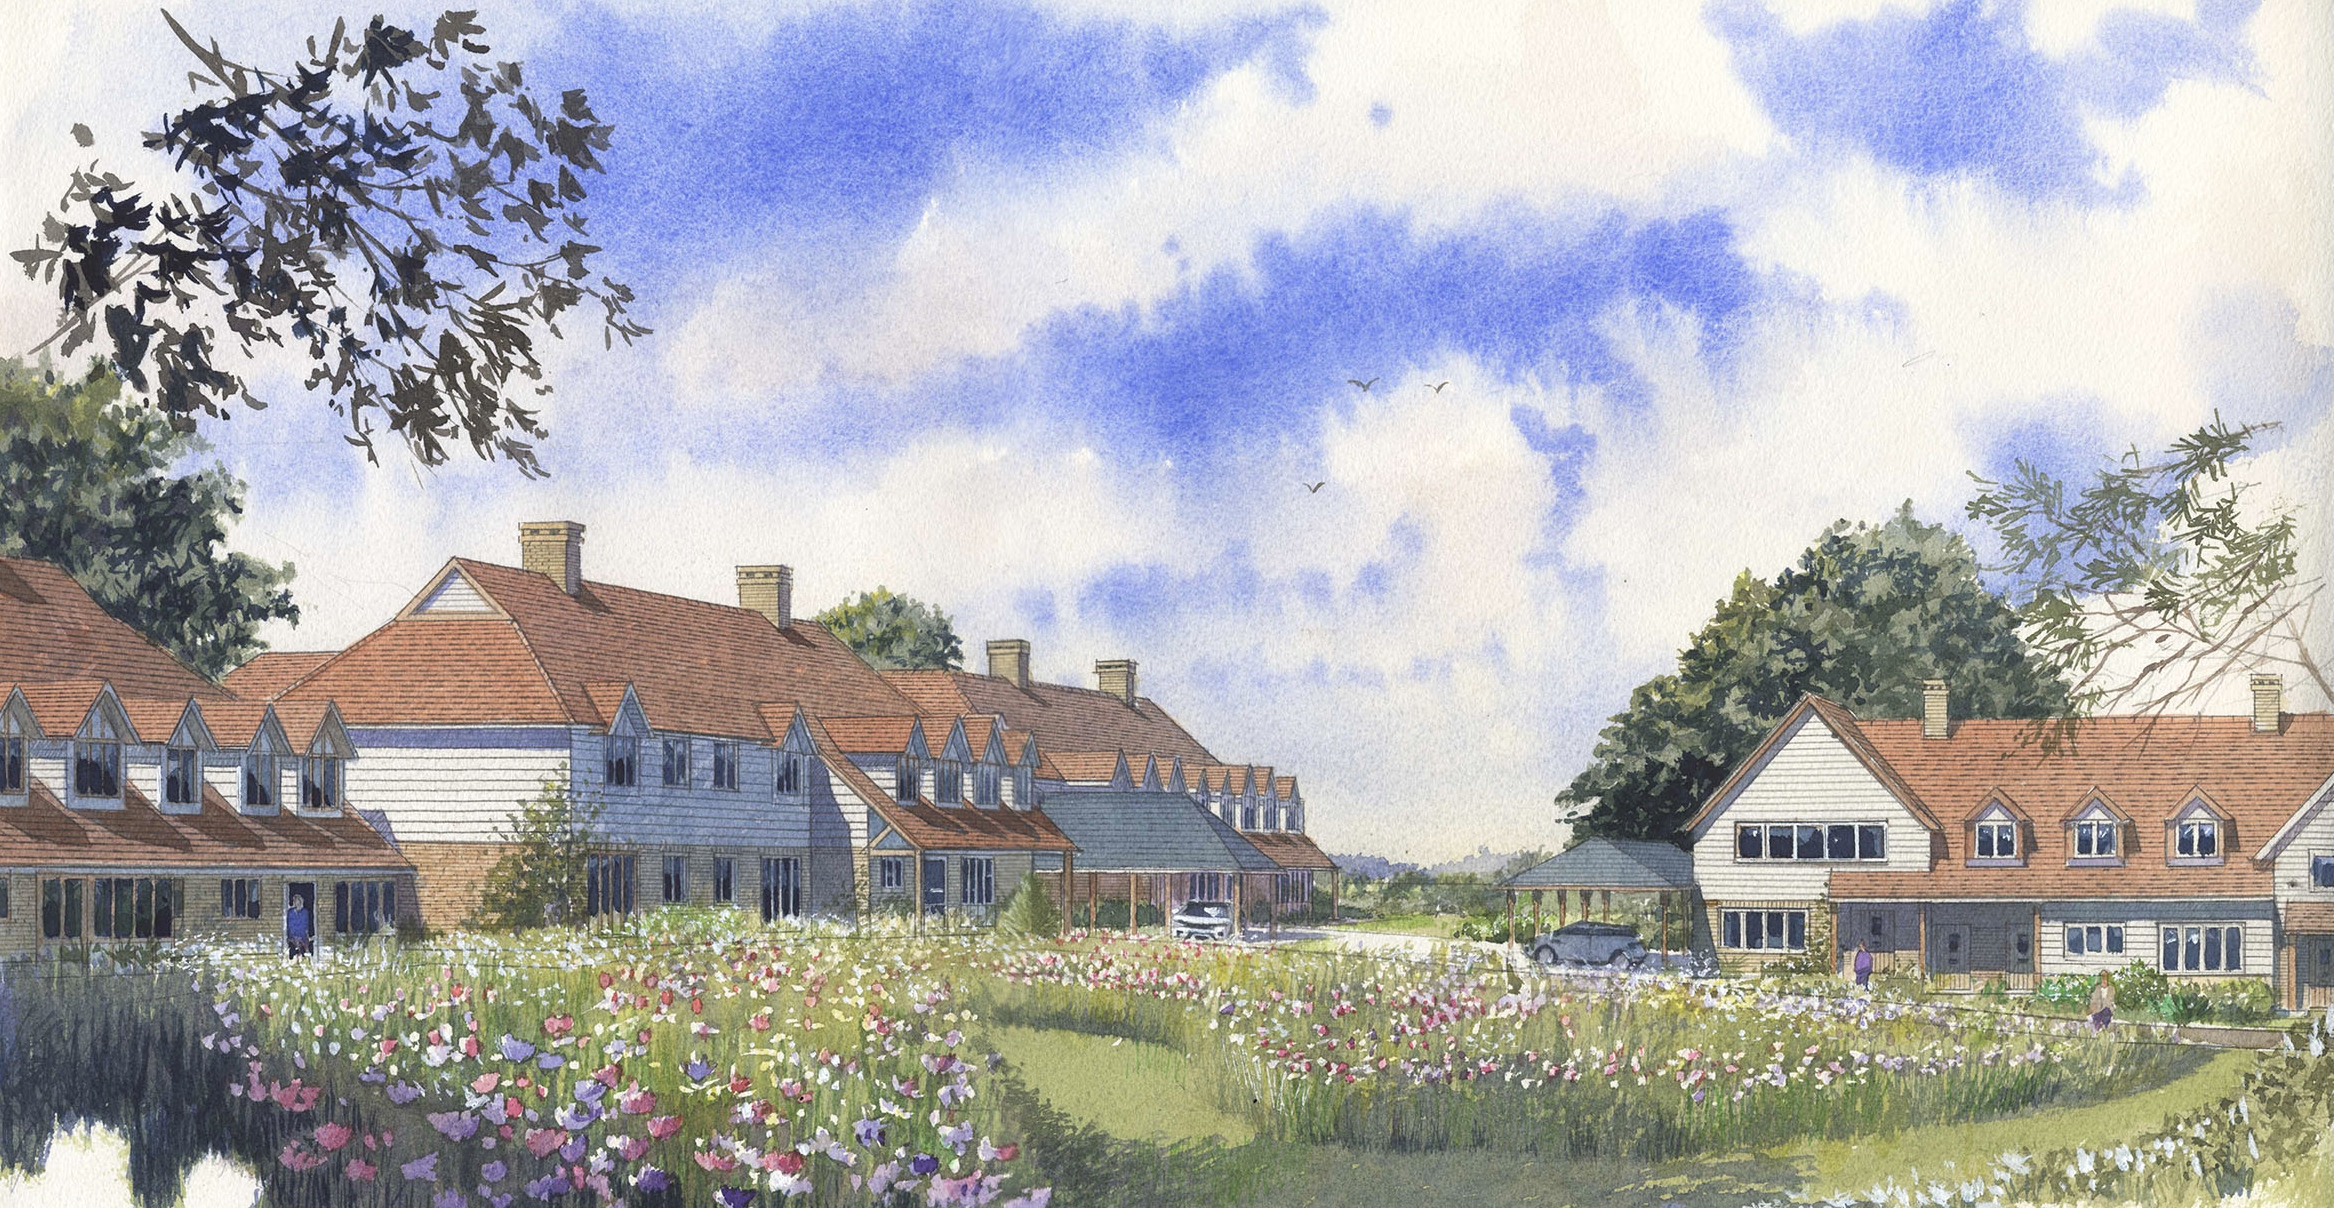 Tenterden - We have recently submitted a planning application for a mixed assisted living and care home scheme for APM, Cognatum and Barchester Healthcare. The sloping site is to the west of Tenterden town centre. The scheme comprises 22 new assisted living units plus a resident managers office, and a 56 bed care home for the frail elderly with specialist provision for dementia patients.A substantial area around some existing badger sets will be left undeveloped, cultivated as a wild flower meadow and safeguarded for the future.